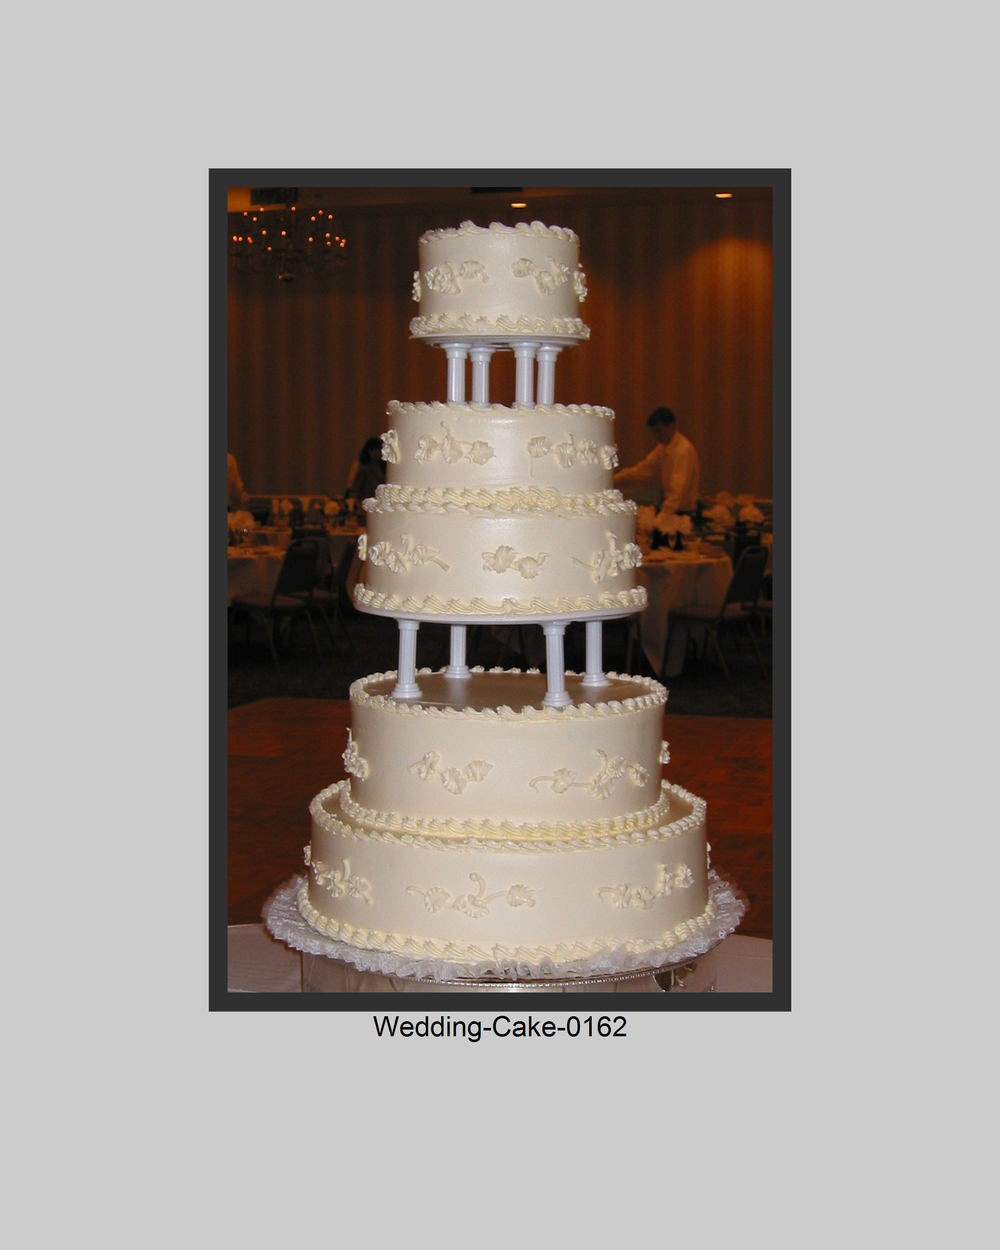 Wedding-Cake-Prints-0162.jpg